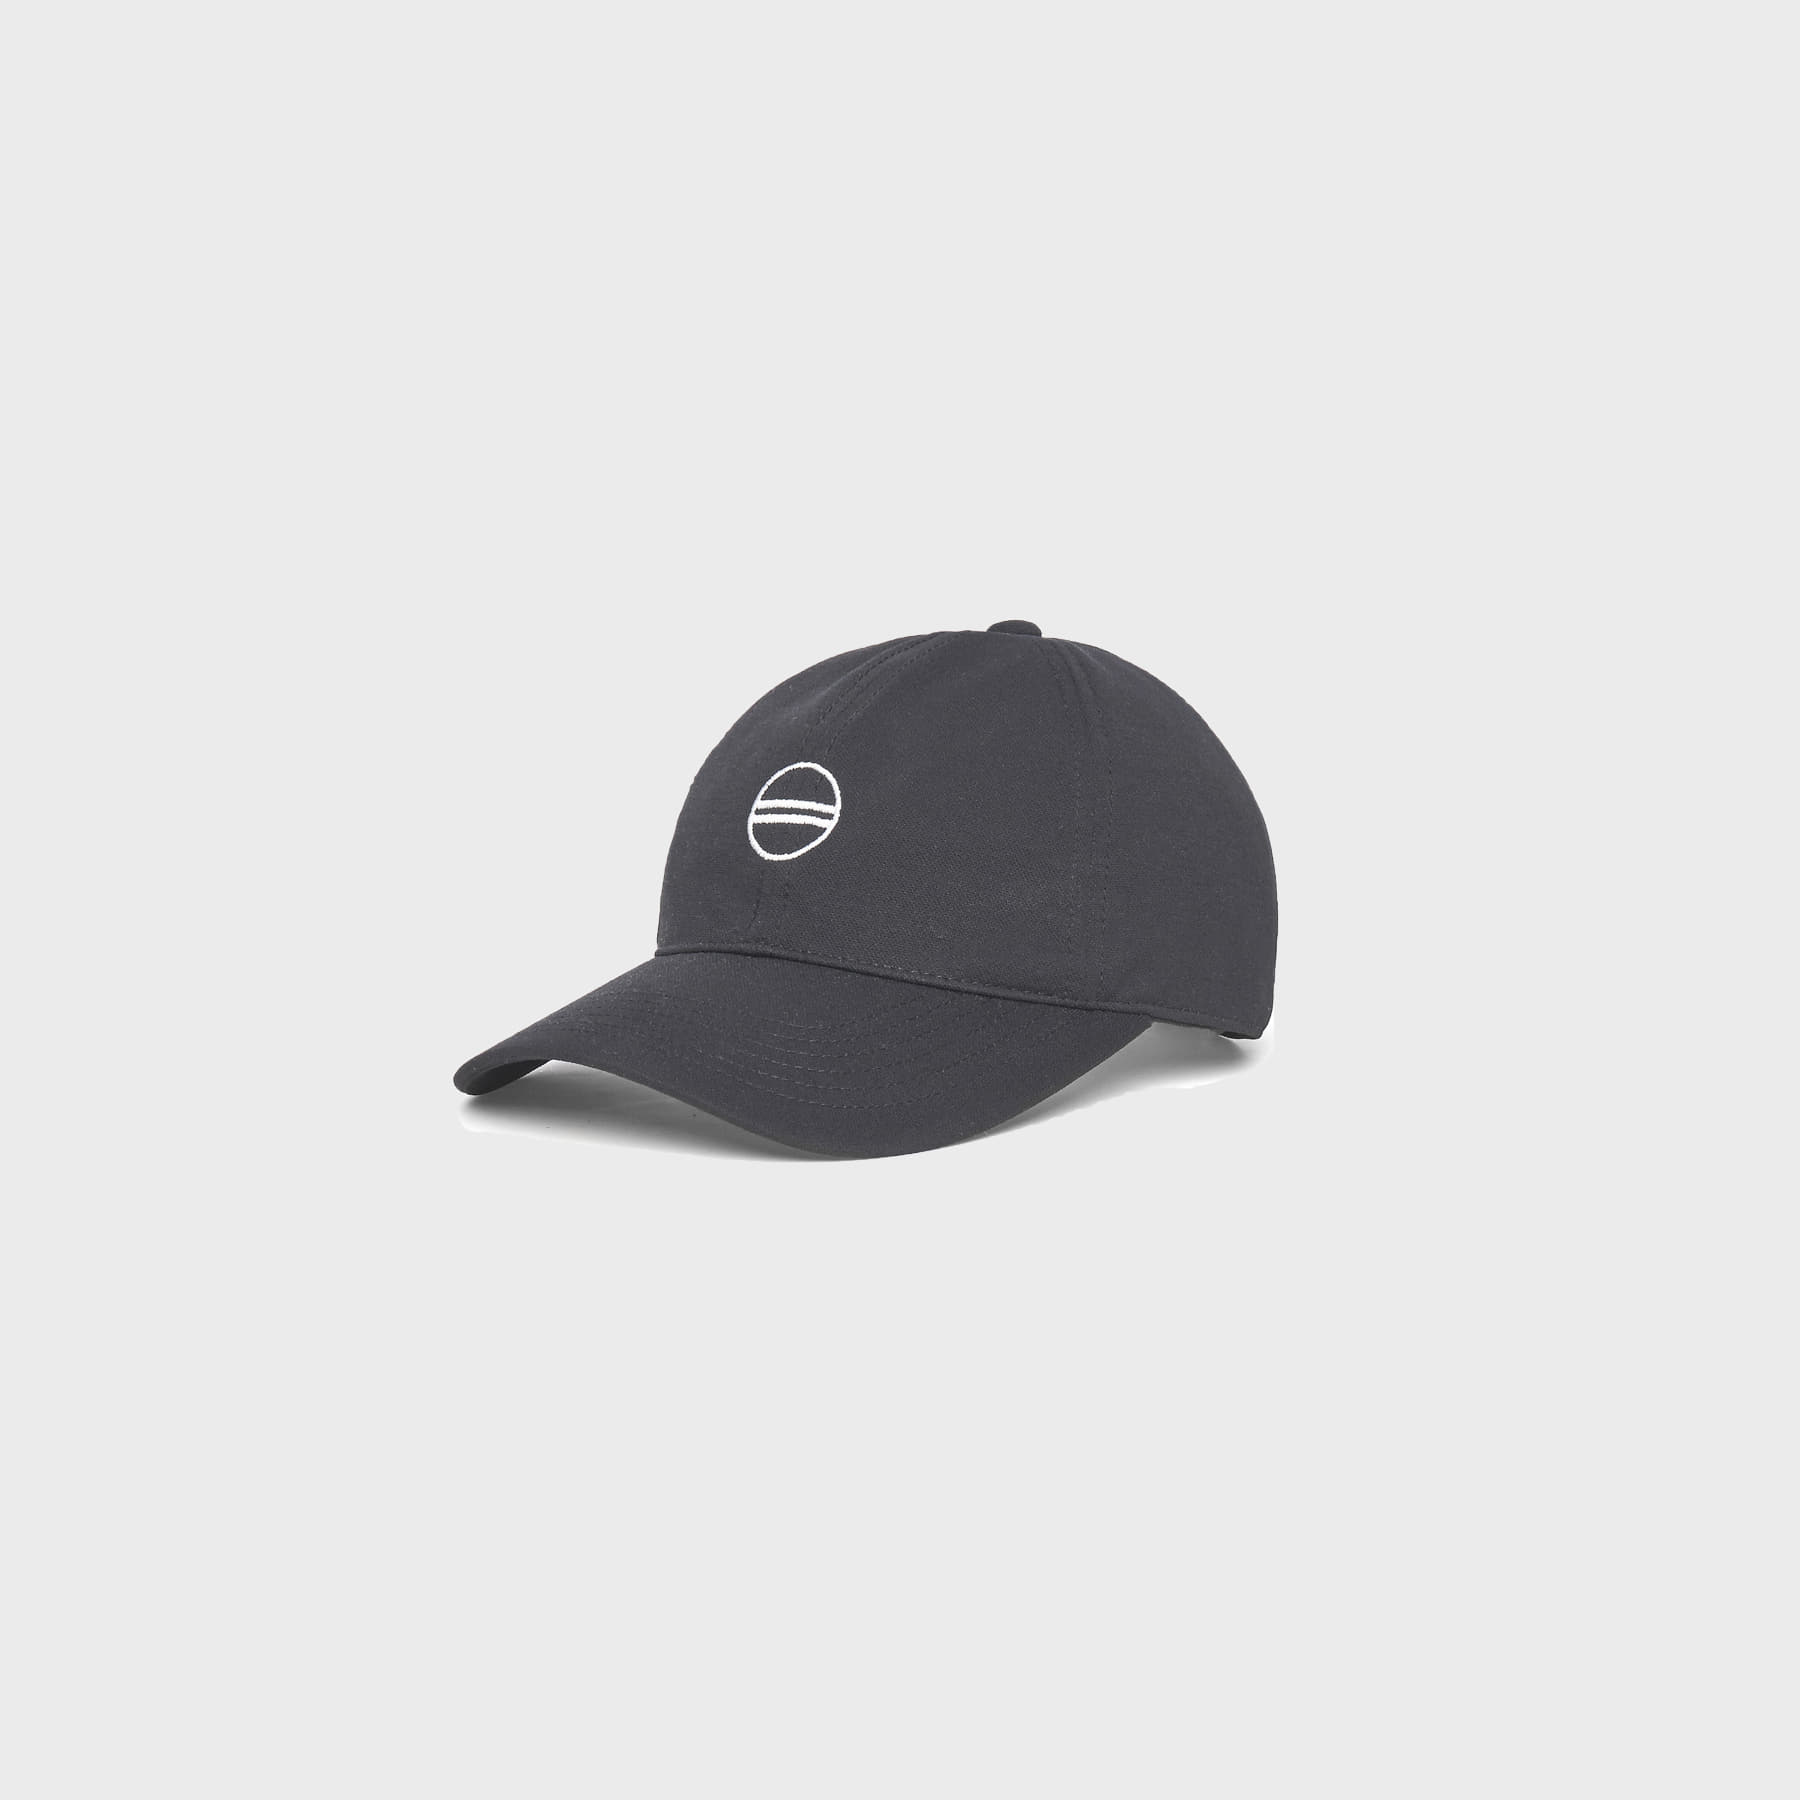 corn ballcap (gray)